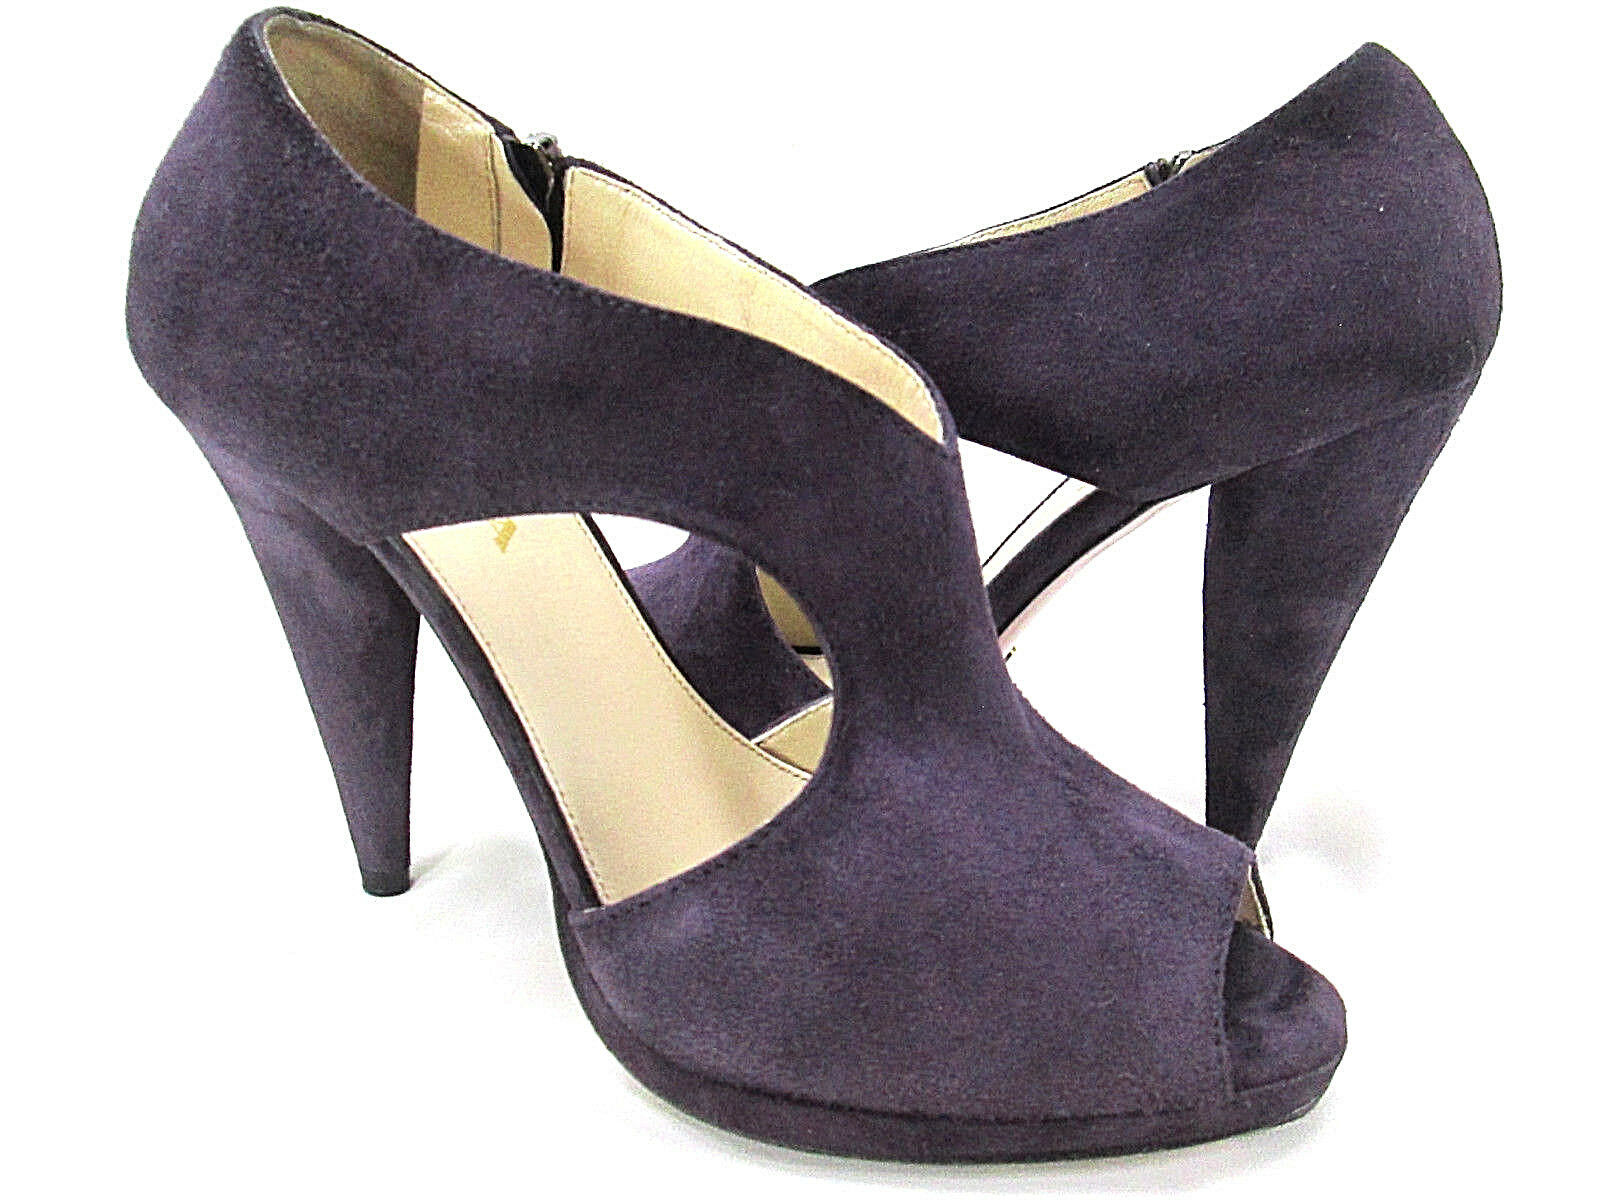 PRADA Purple Suede Leather Cut-Out Pumps Bootie Womens 37.5 / 7.5 Zip Cone Heels